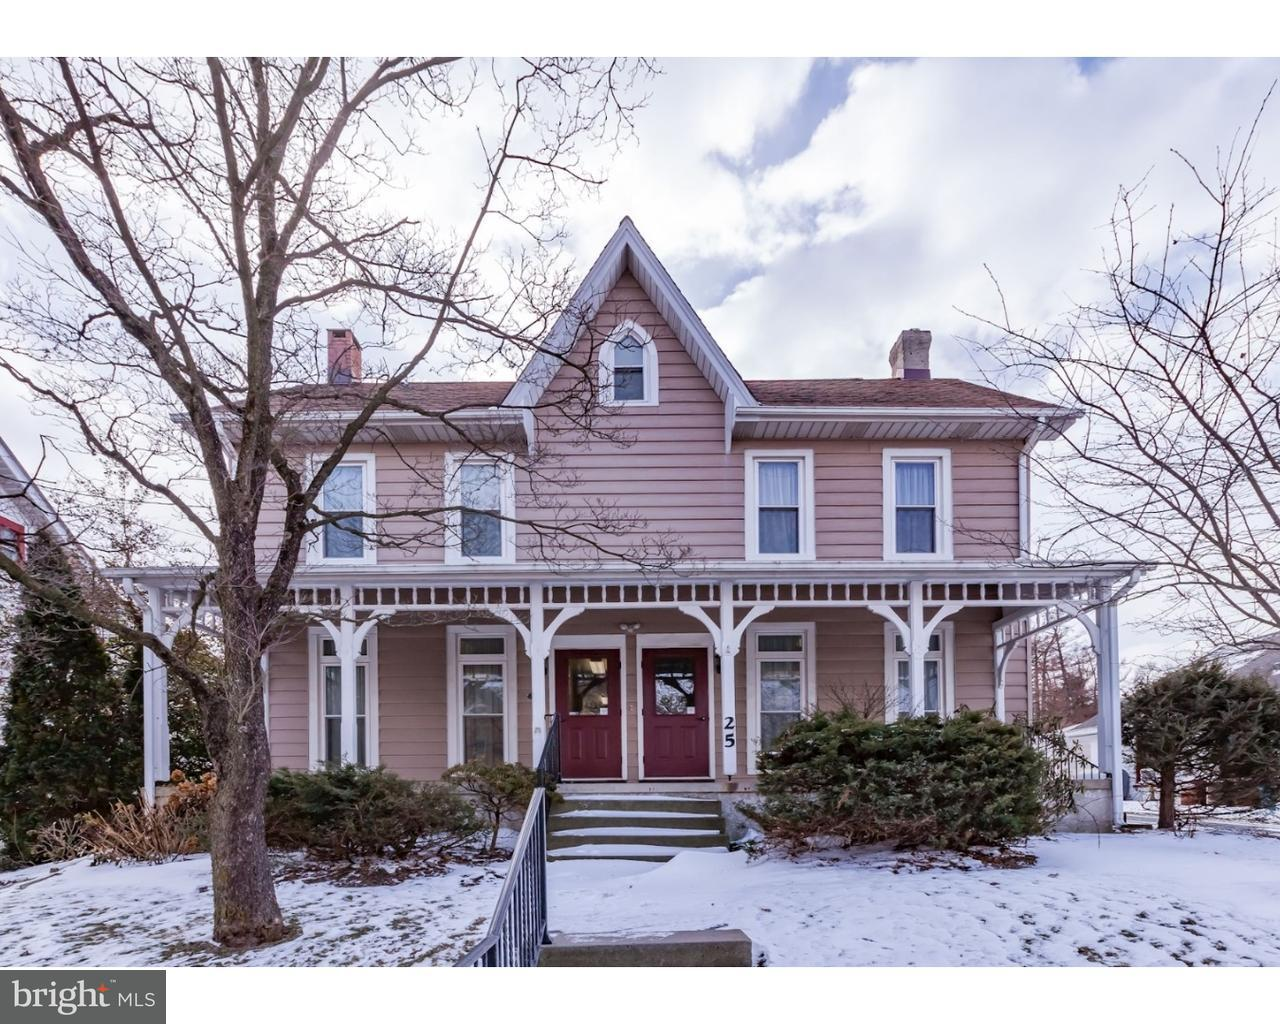 25 E MAIN ST, ELVERSON - Listed at $425,000,